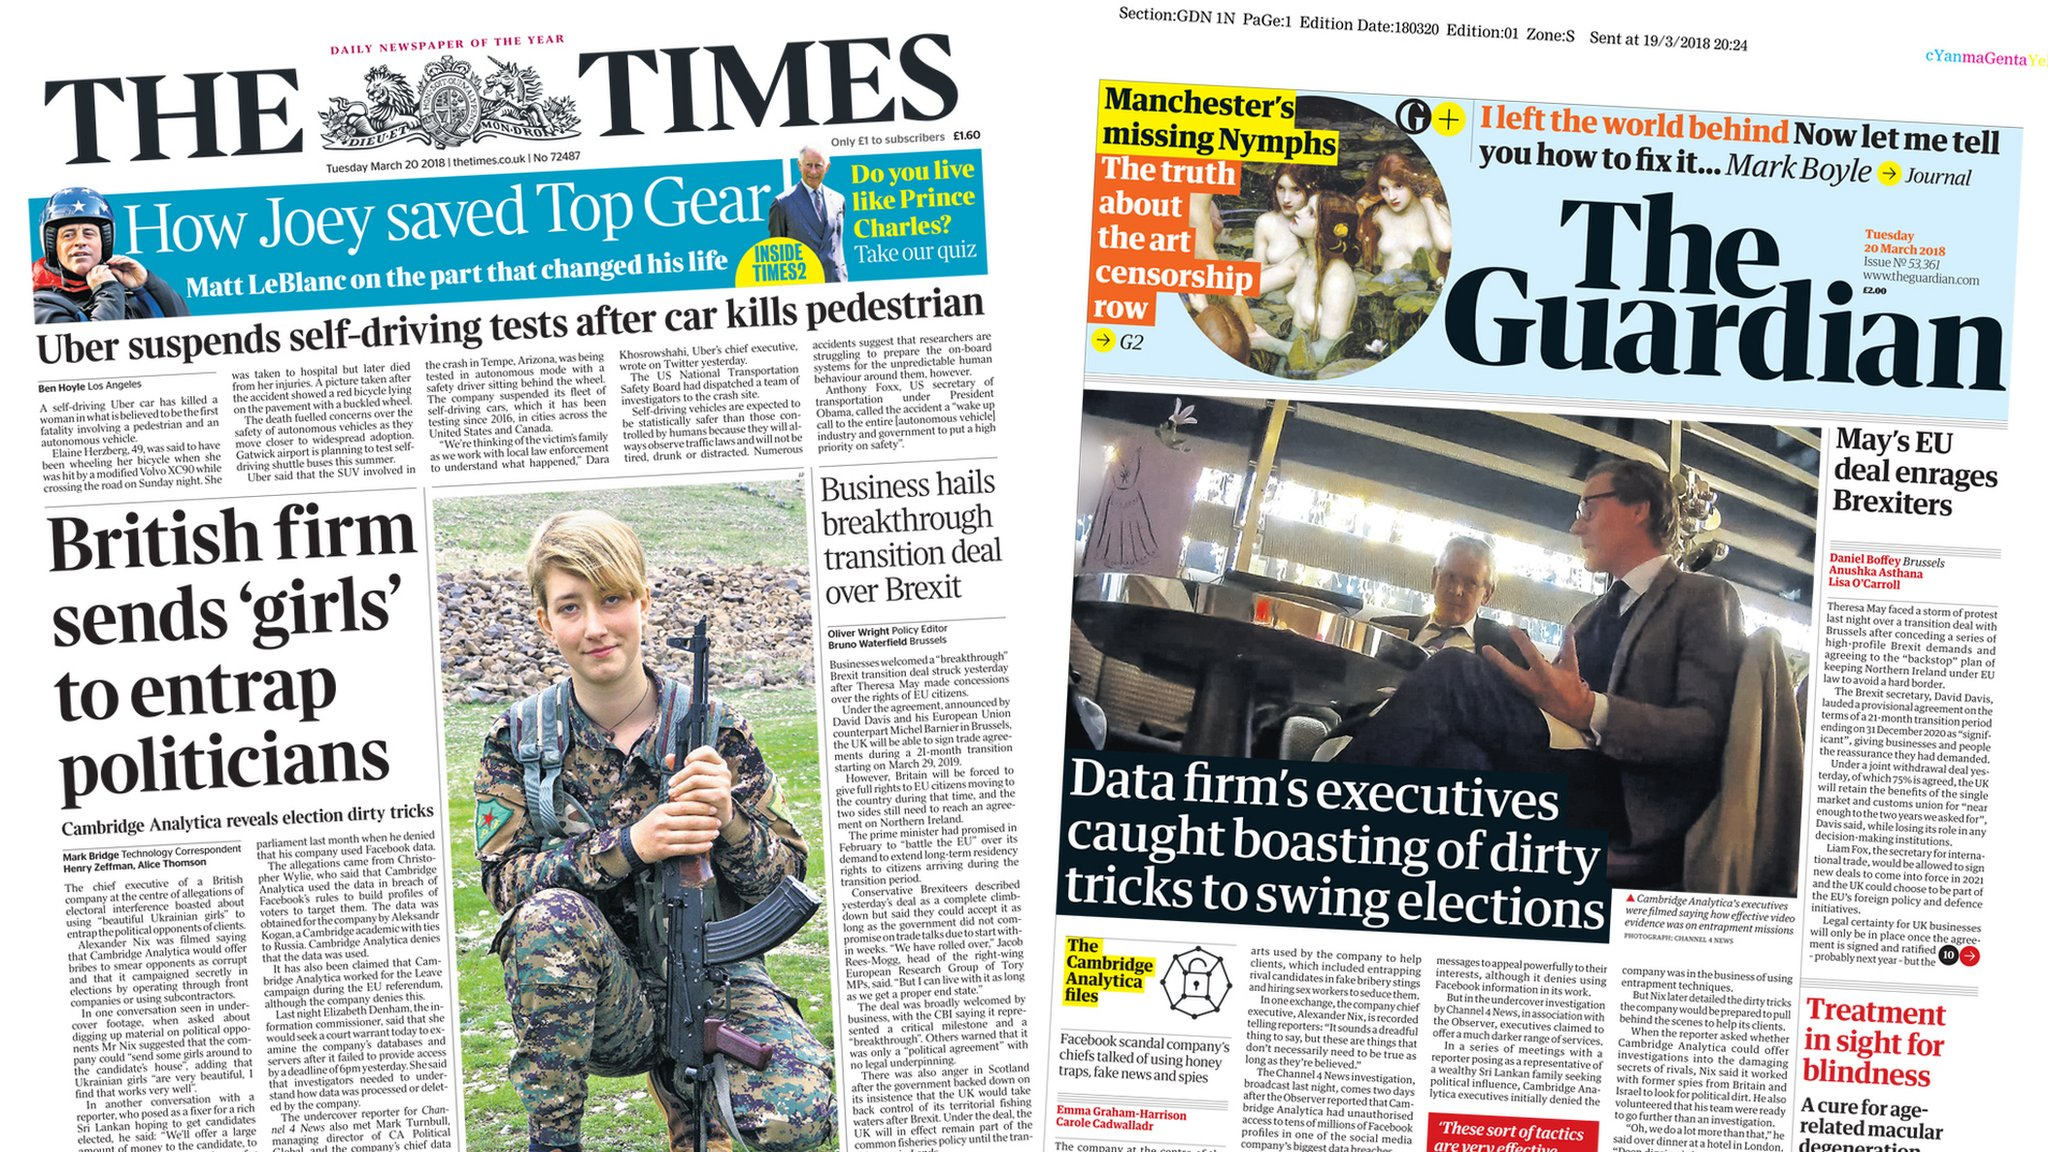 Newspaper headlines: Fresh claims against data firm and McPartlin rehab